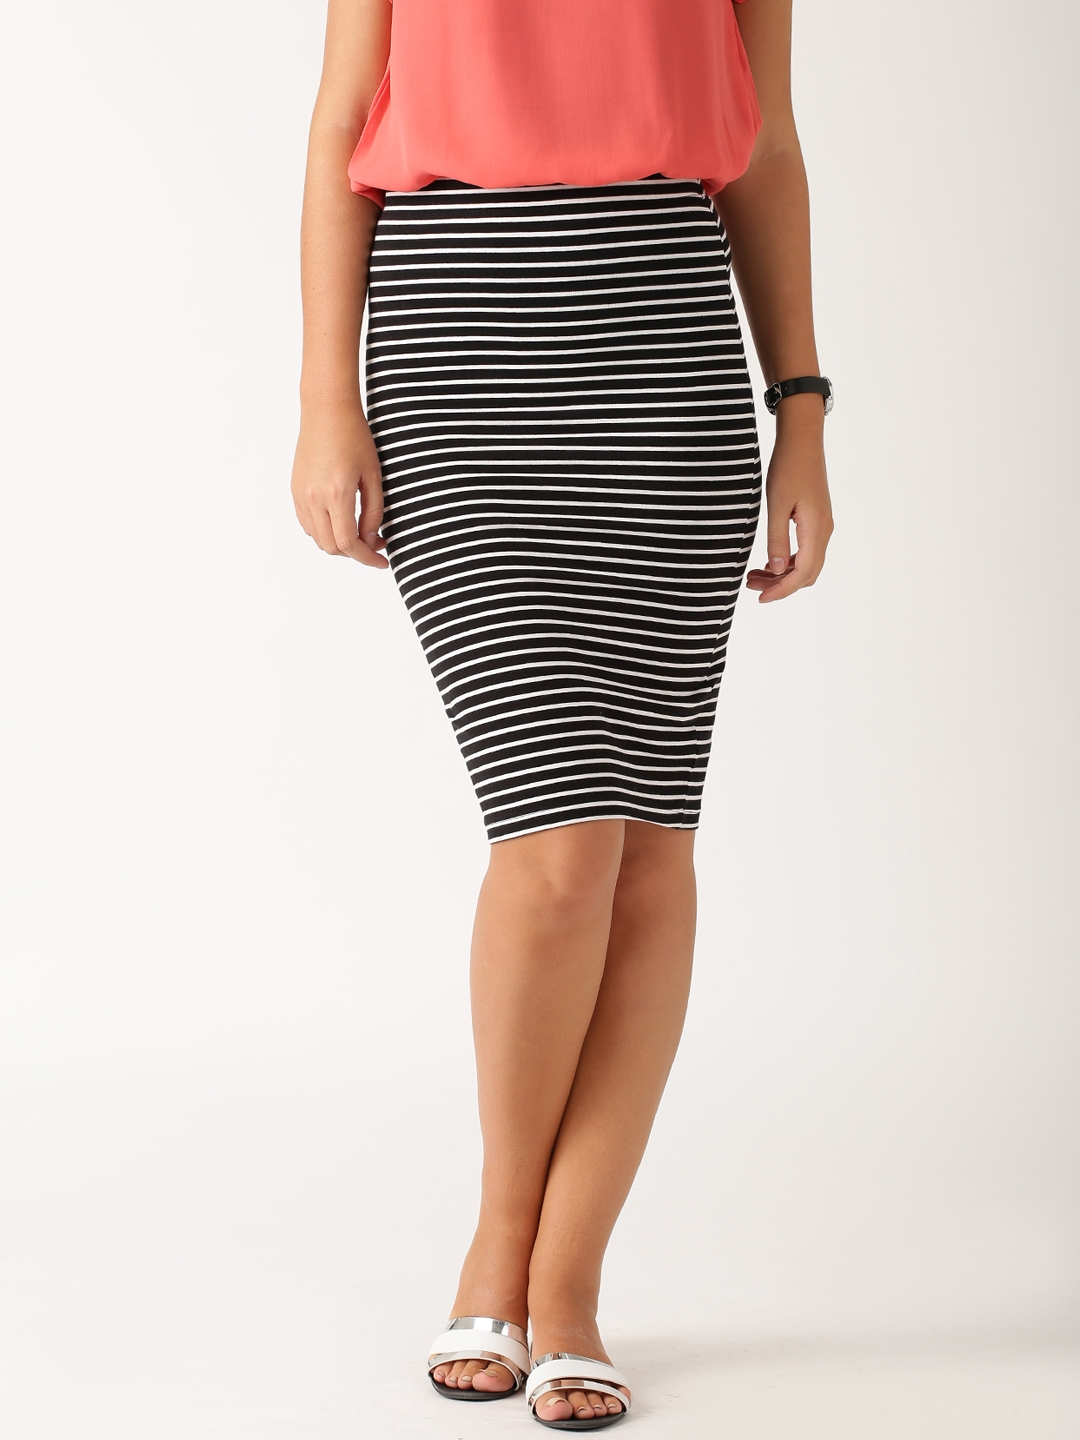 f641f4a814 Buy ETHER Black & White Striped Pencil Skirt - Skirts for Women ...